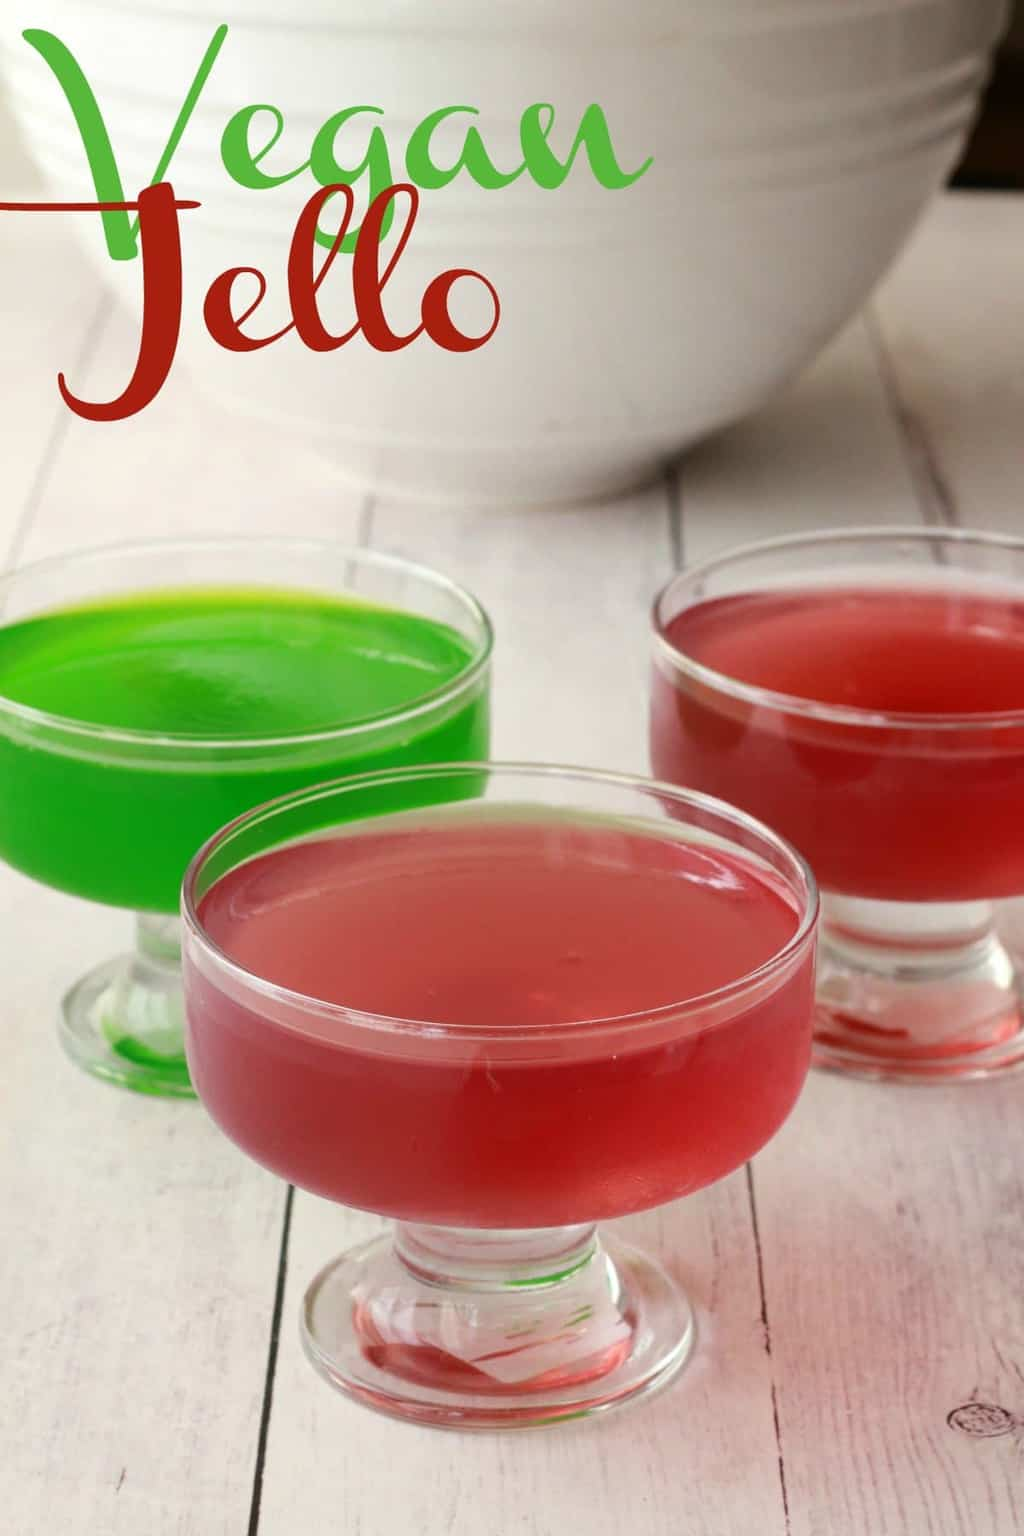 Vegan Jello in fun and fruity red and green colors in glass dishes.